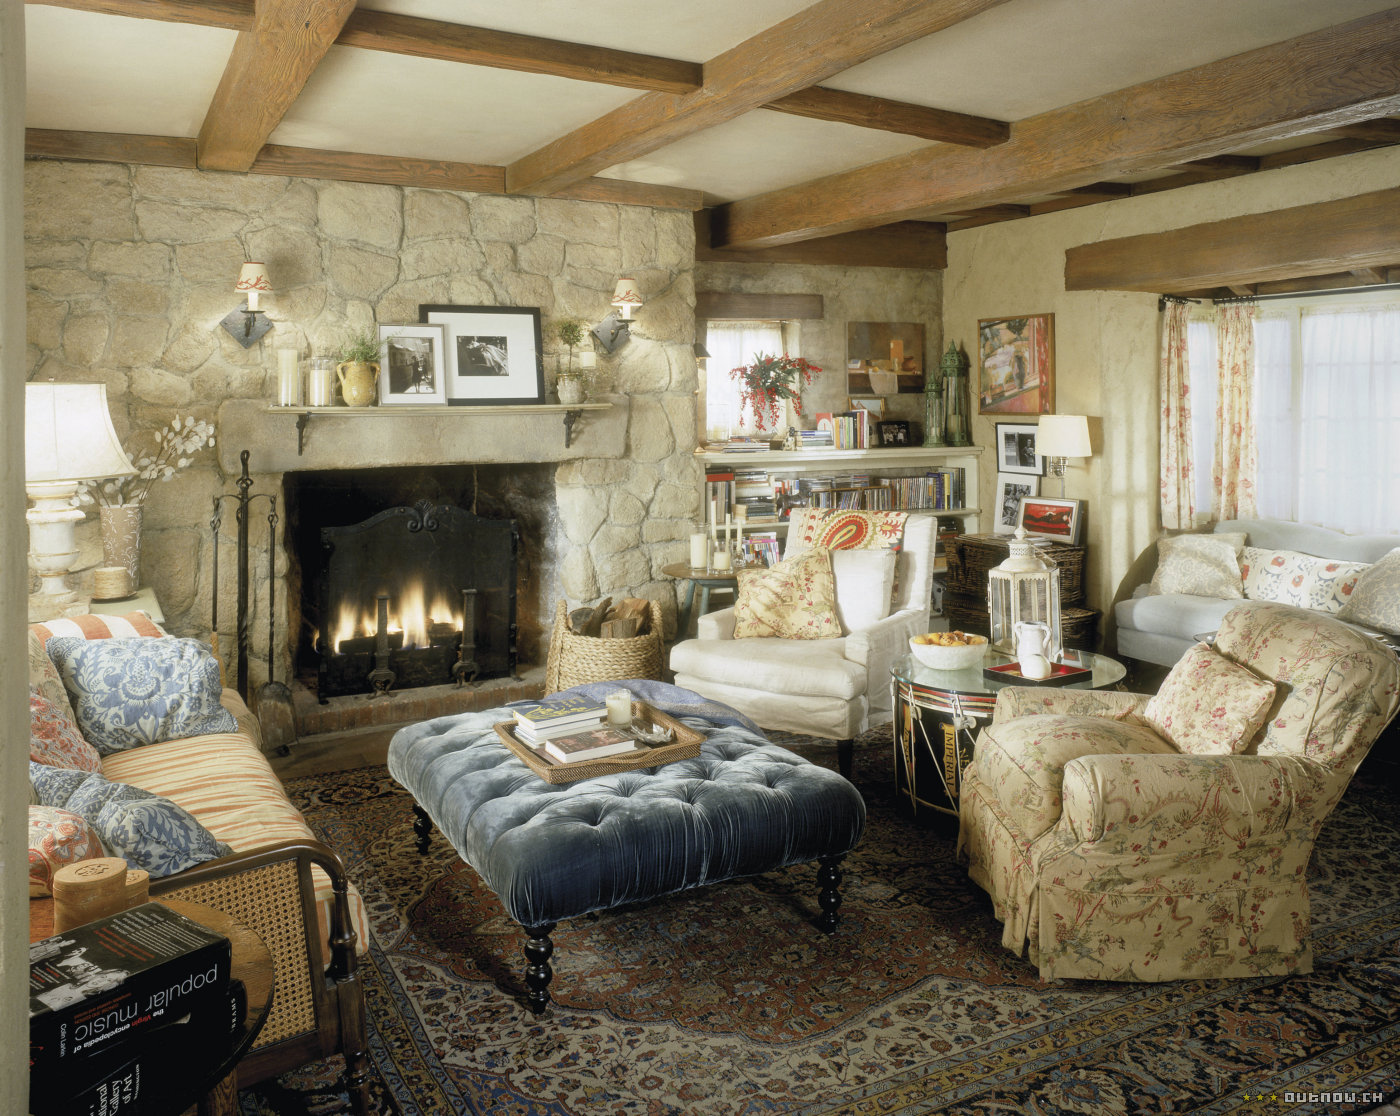 All Things Luxurious Nancy Meyers Movie Interiors The Holiday